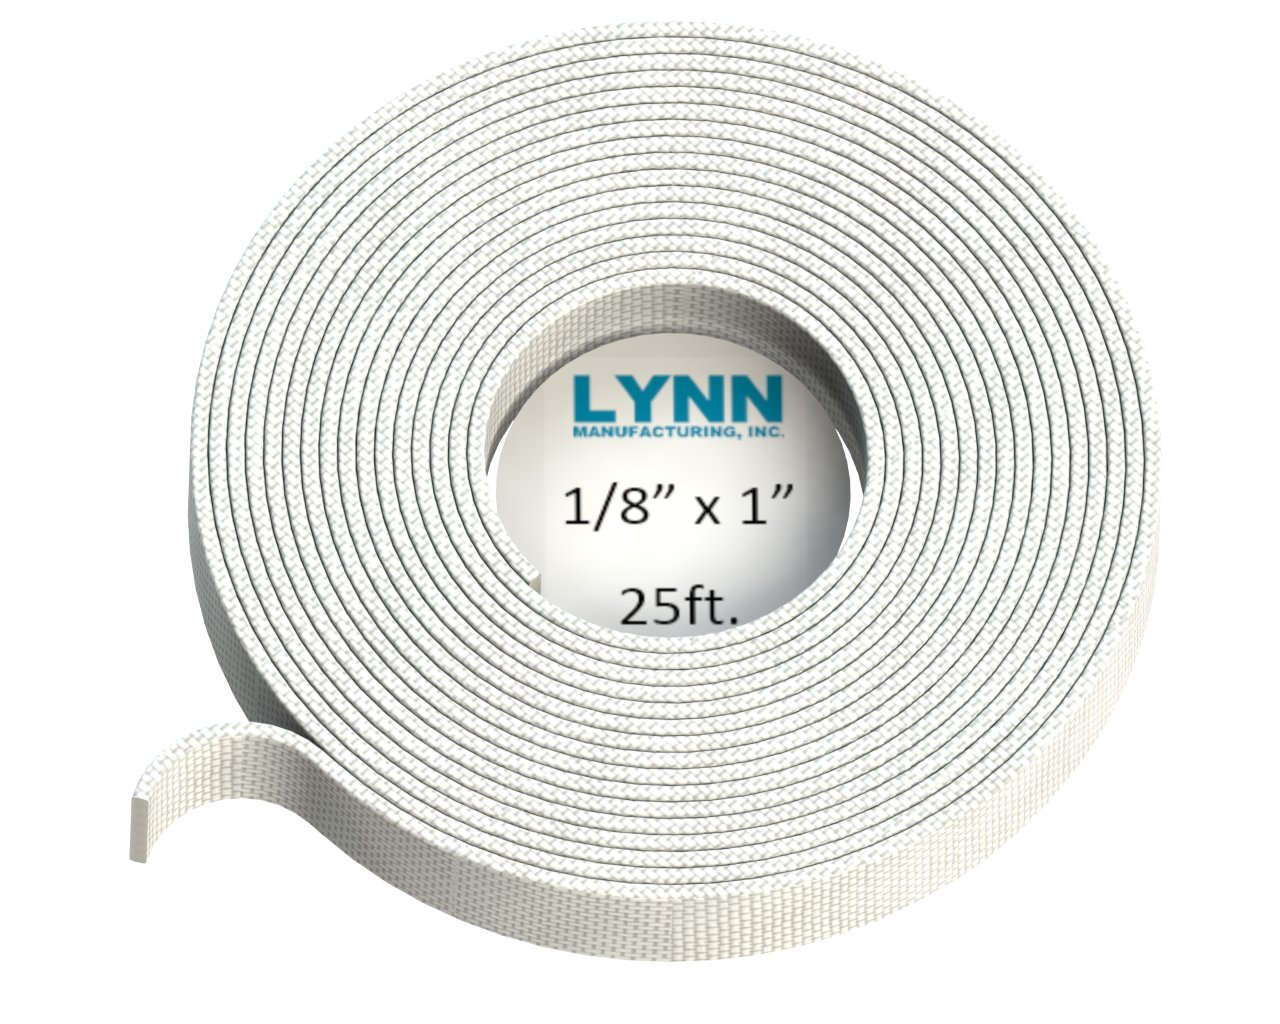 Lynn Manufacturing High Temperature Flat Gasket Tape, 1000F, White, Boiler & Furnace, 1'' x 1/8'' x 25ft